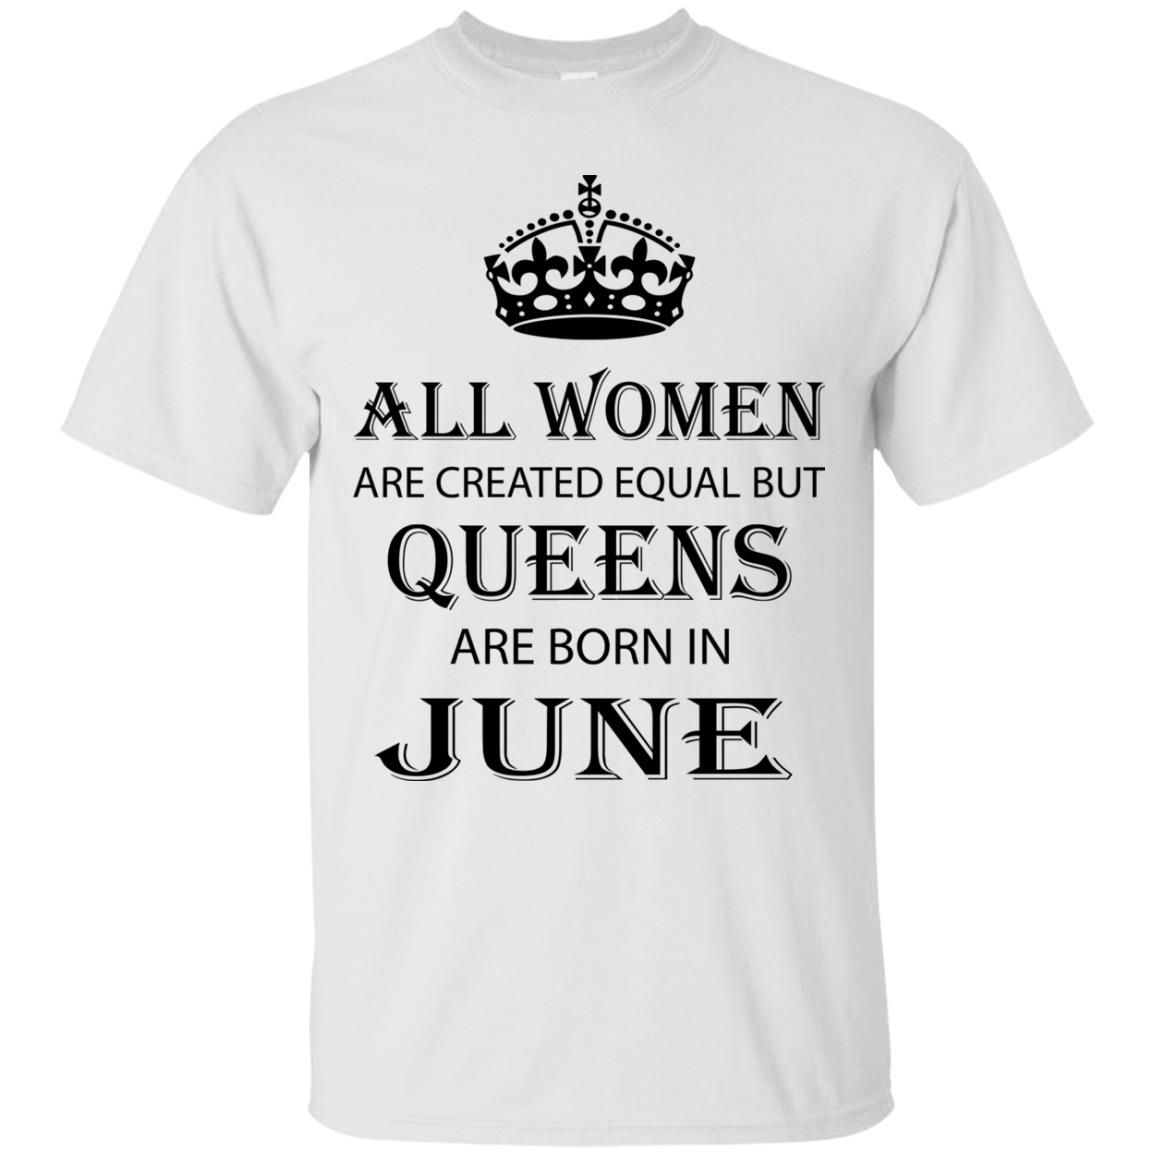 845a6e74d All Women are created equal but Queens are born in June shirt, tank - image